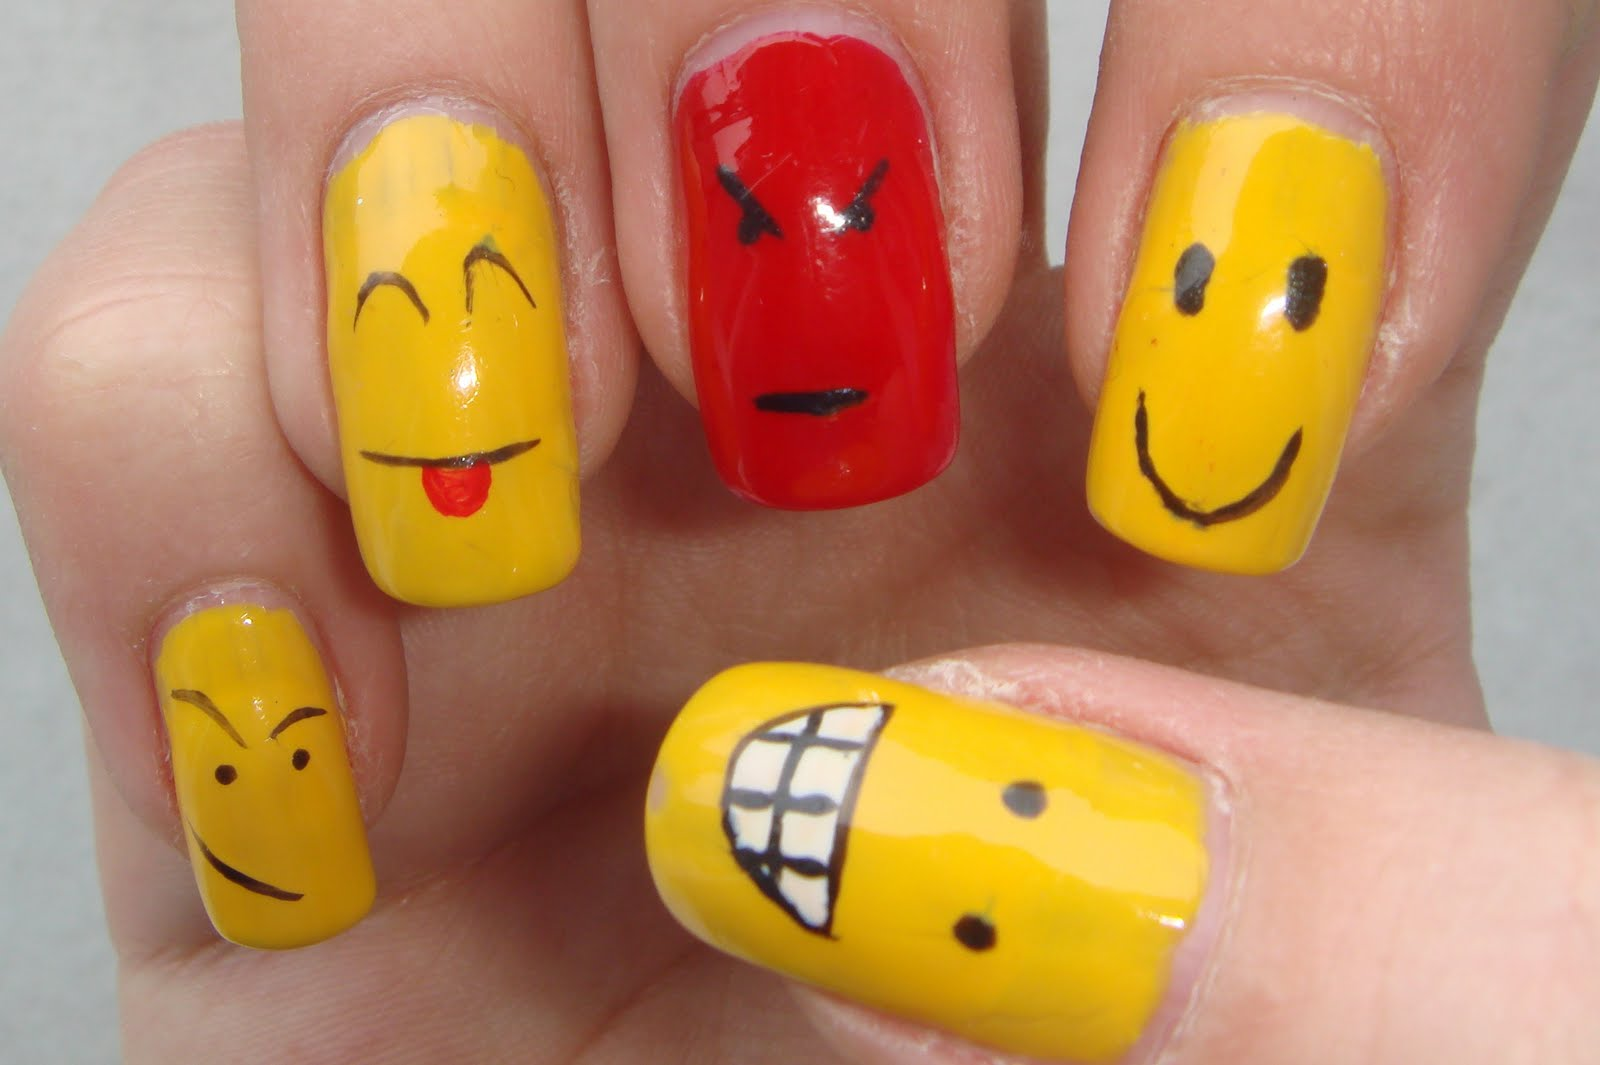 Accropolish Some Nail Arts